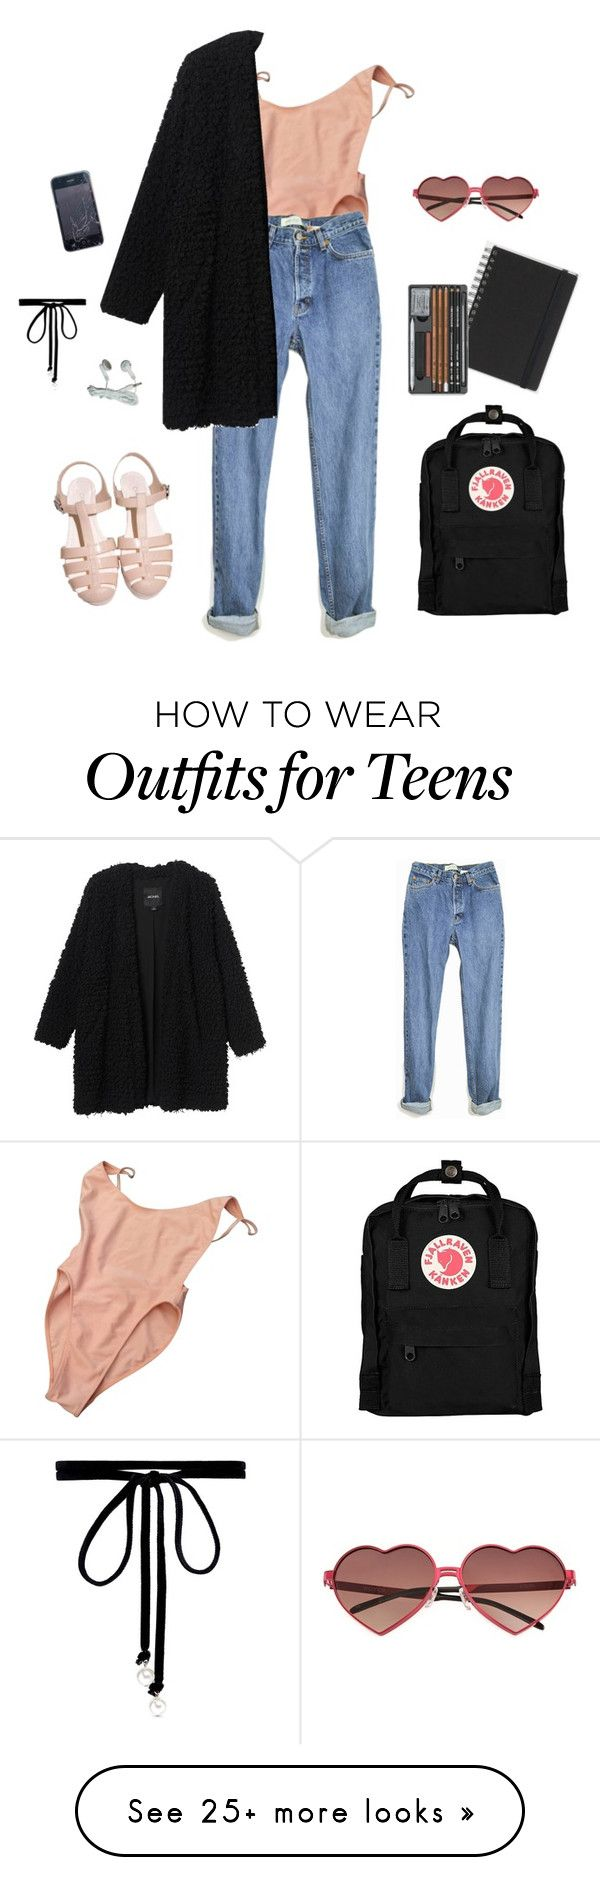 """""""Peach"""" by basiclinsey on Polyvore featuring American Apparel, Monki, Wildfox, Muji, Fjällräven and Joomi Lim"""